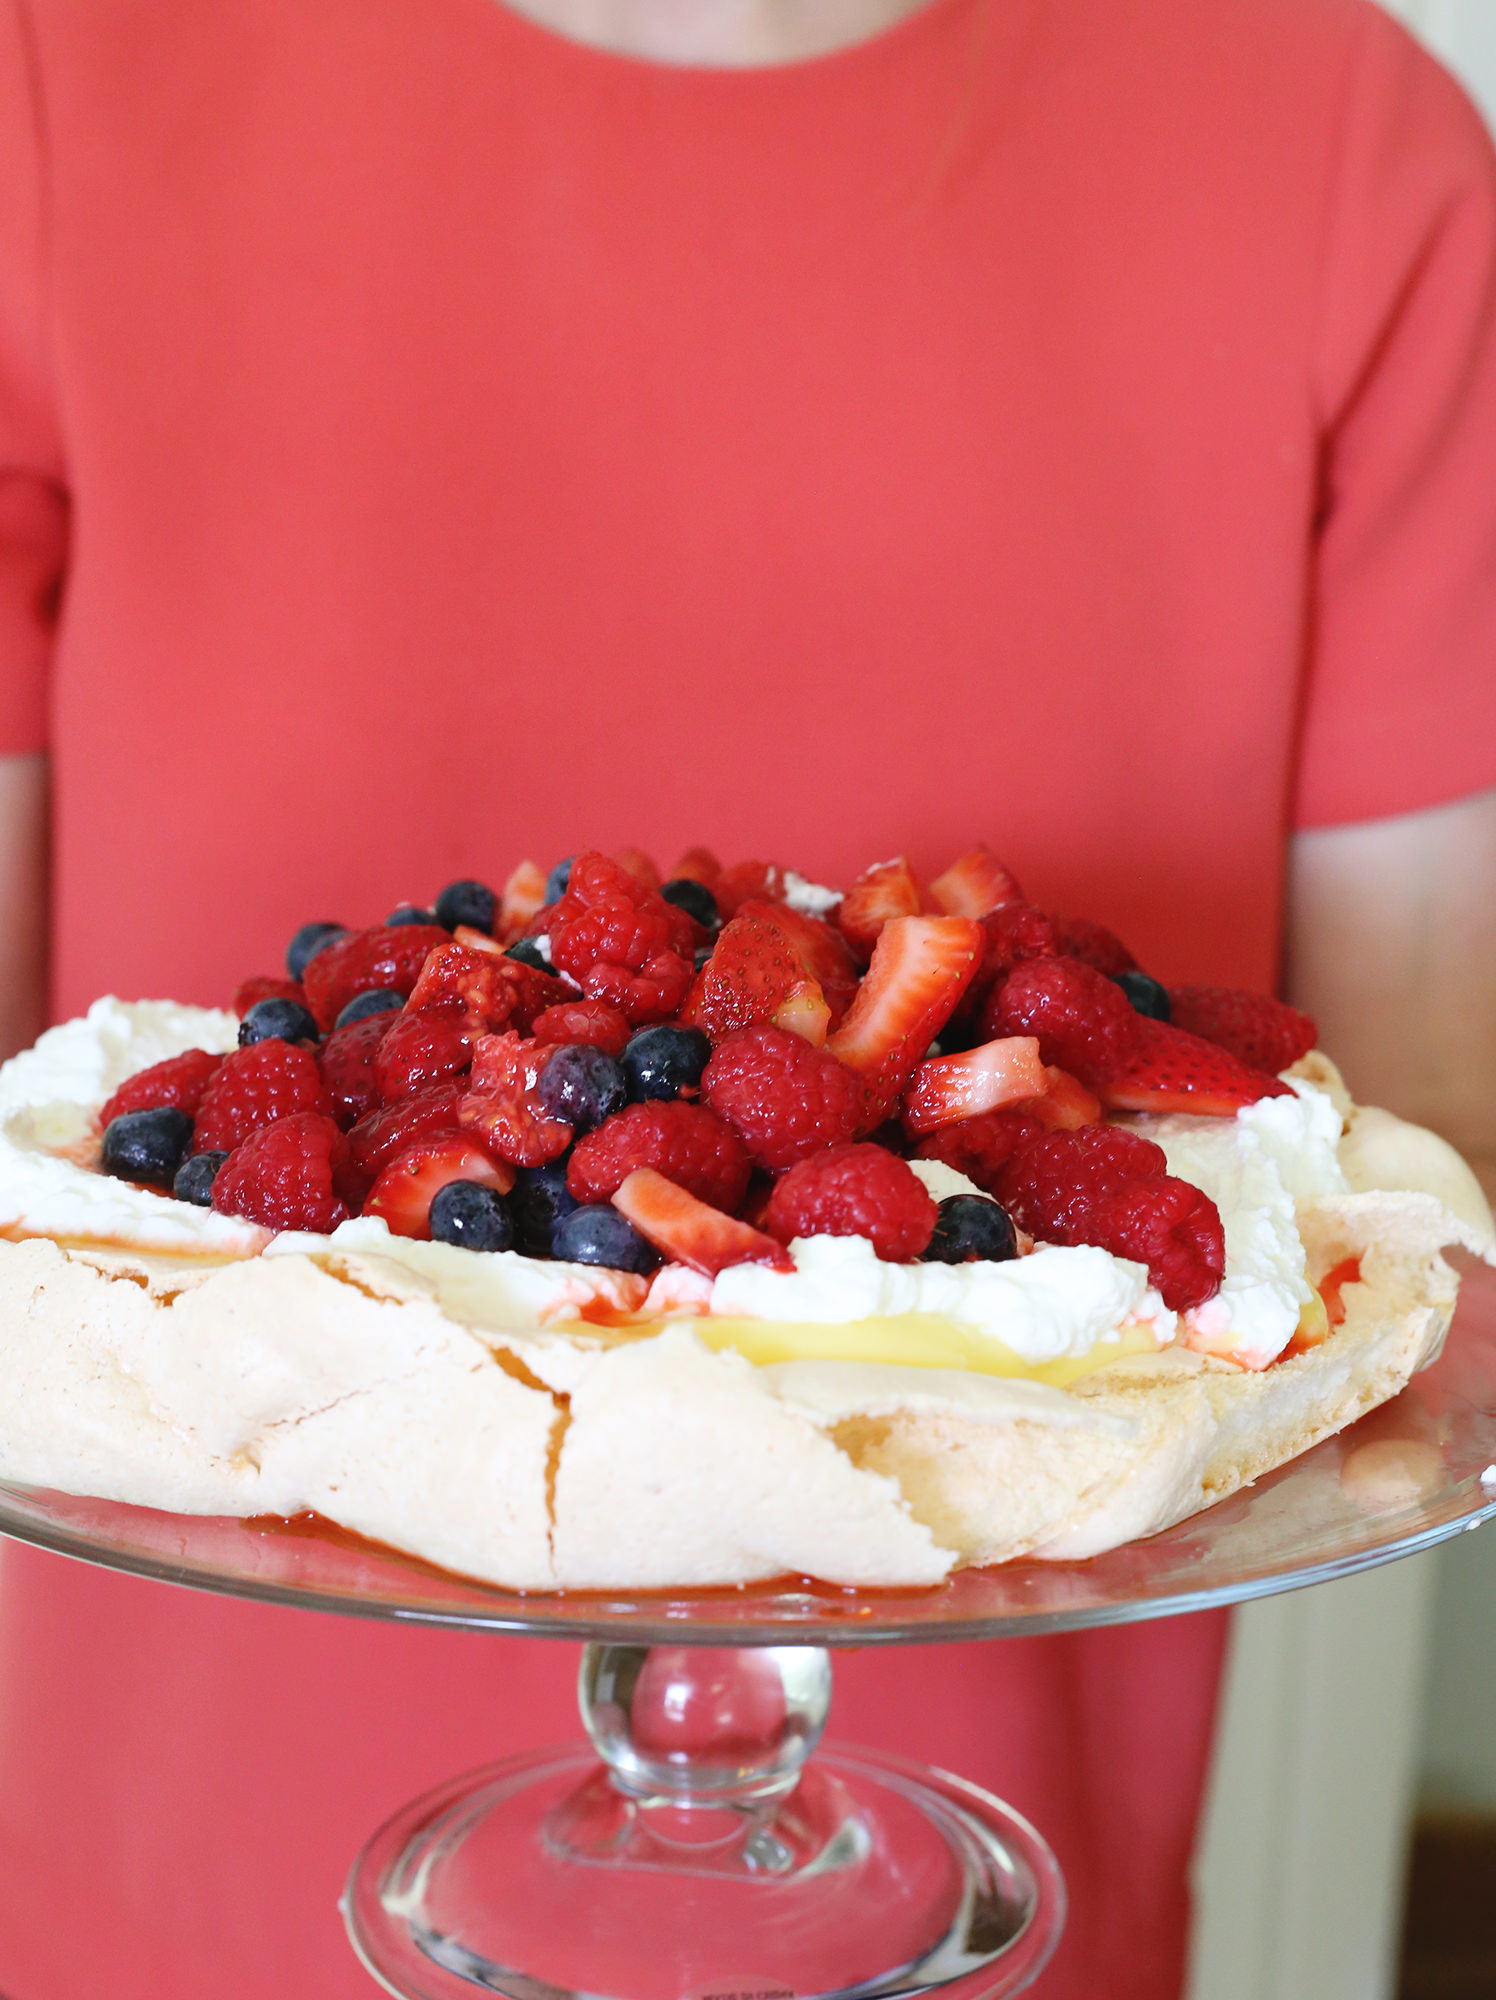 Ina Garten's delicious summer pavlova recipe brought to life via Lily & Val Living